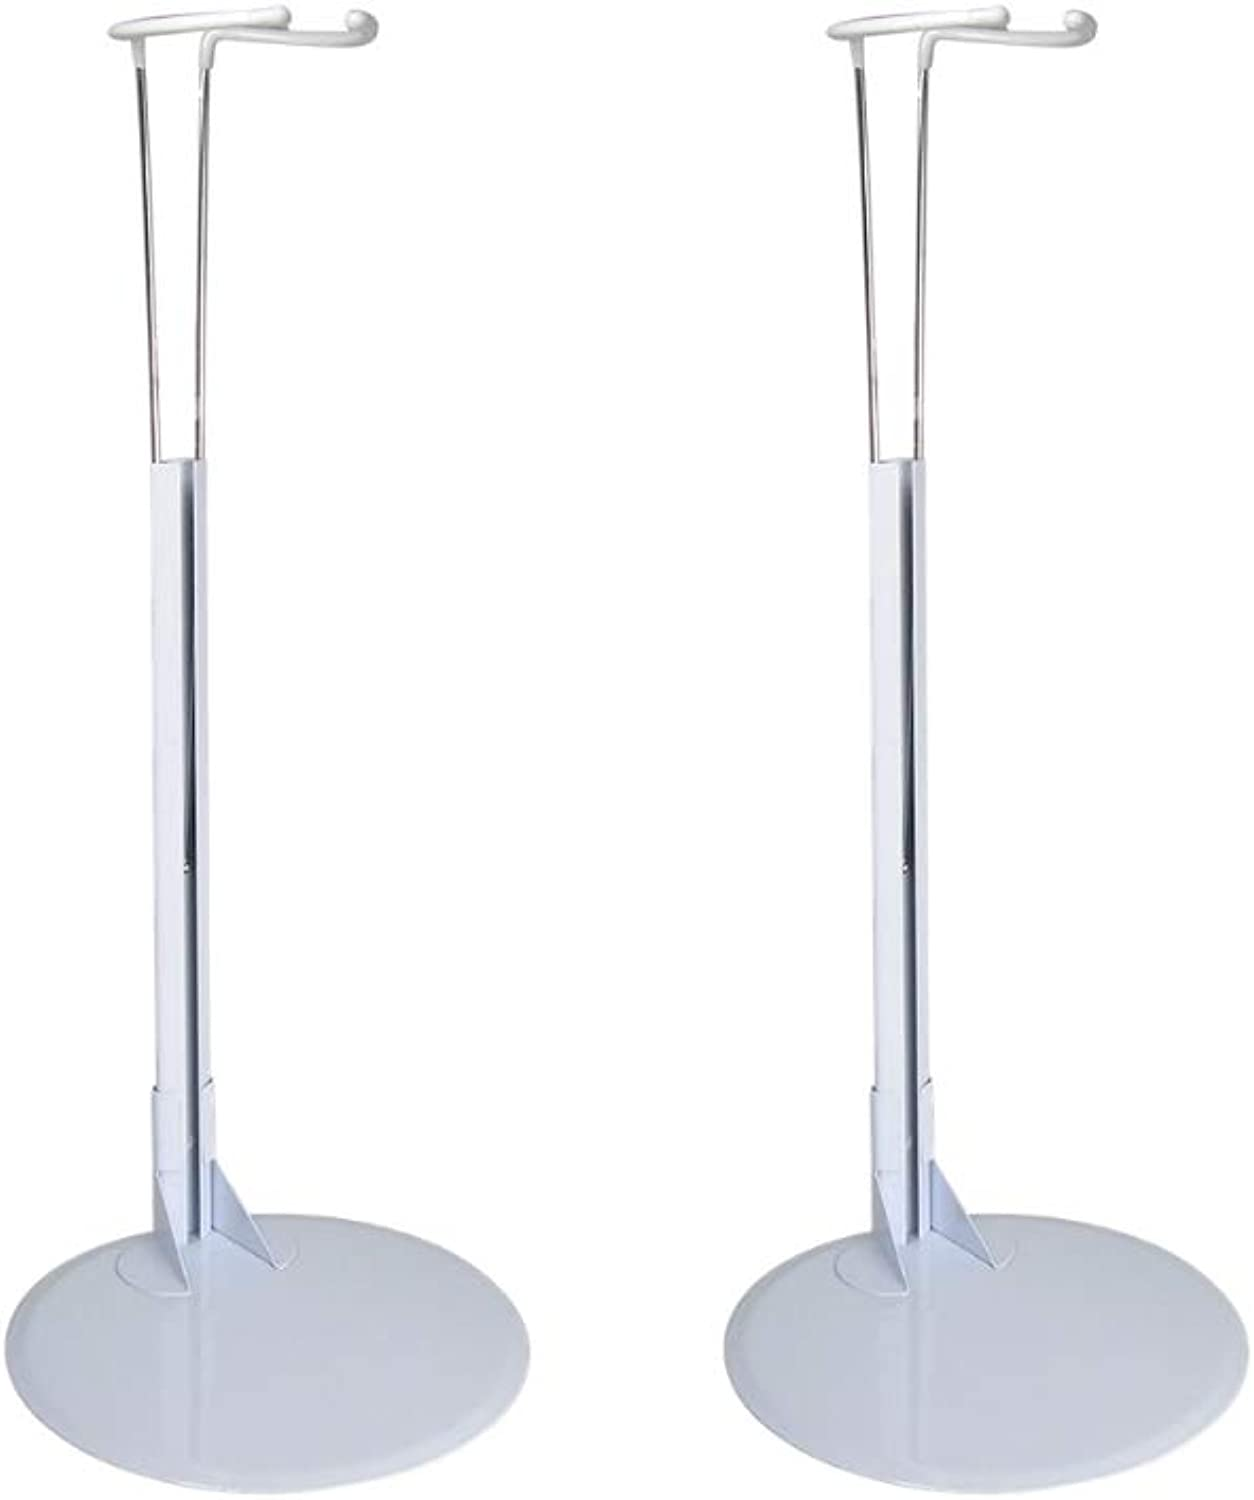 Large Doll Stand Holder - Set of 2 White Vinyl Coated Metal Adjustable Clasps - Fits Dolls and Action Figures 17  to 31  High